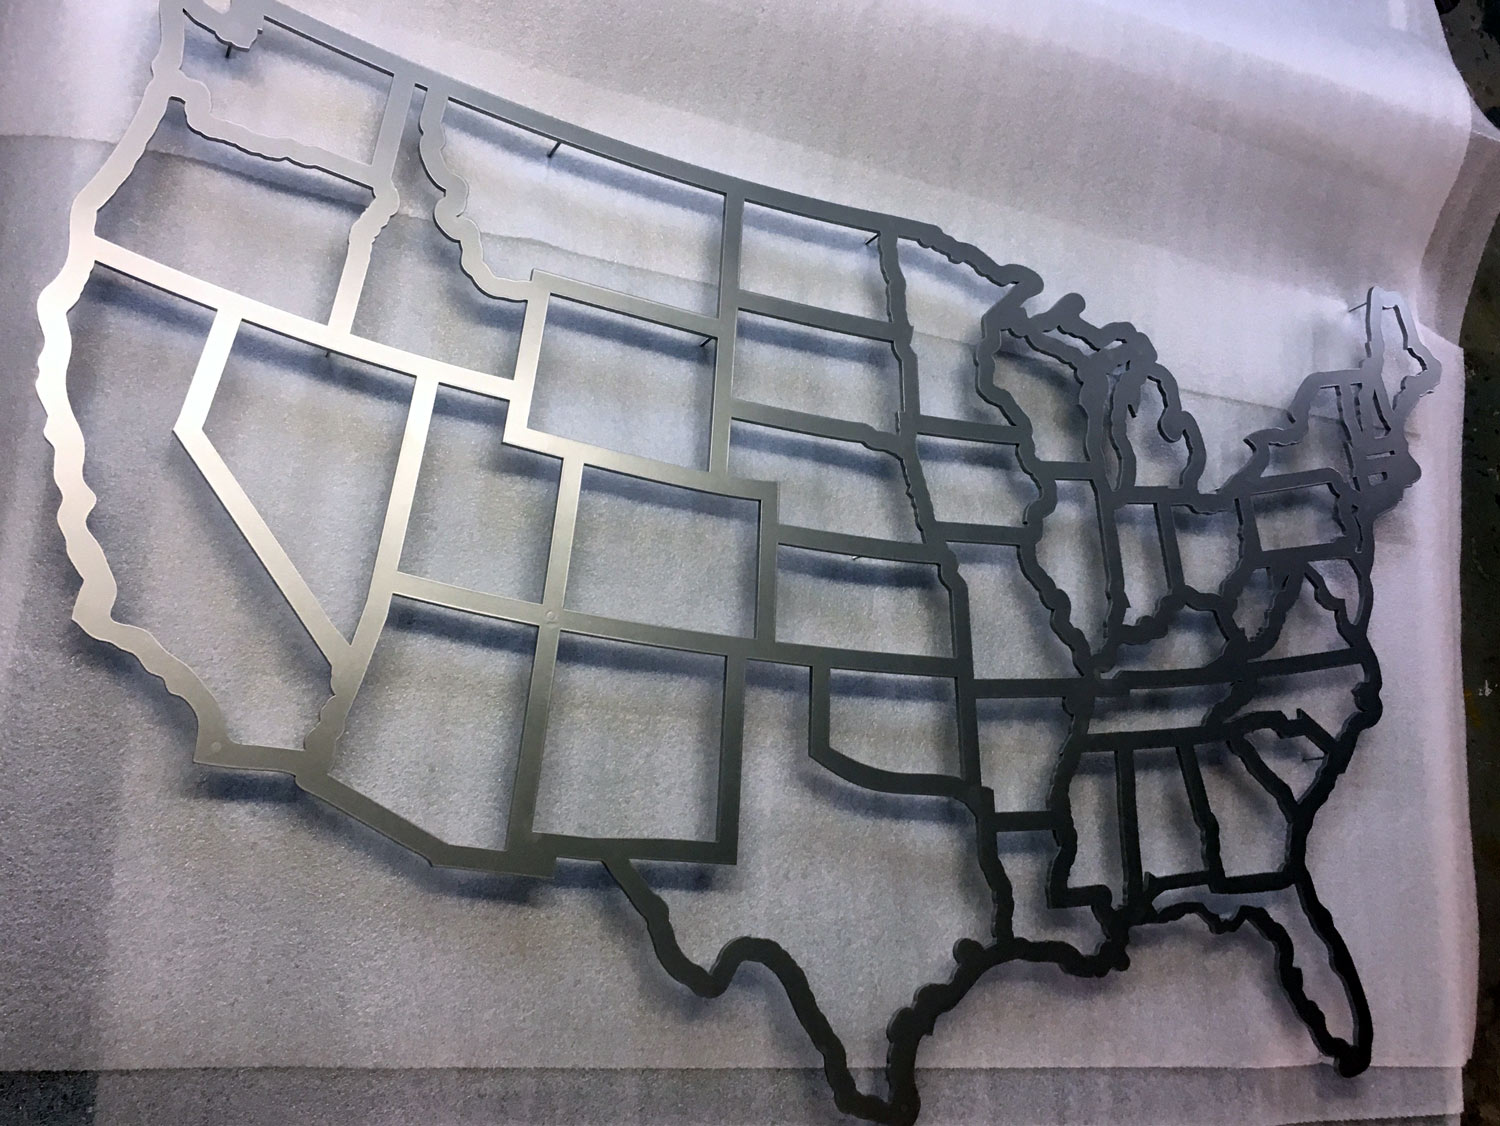 Single Layer Cutout of the United States